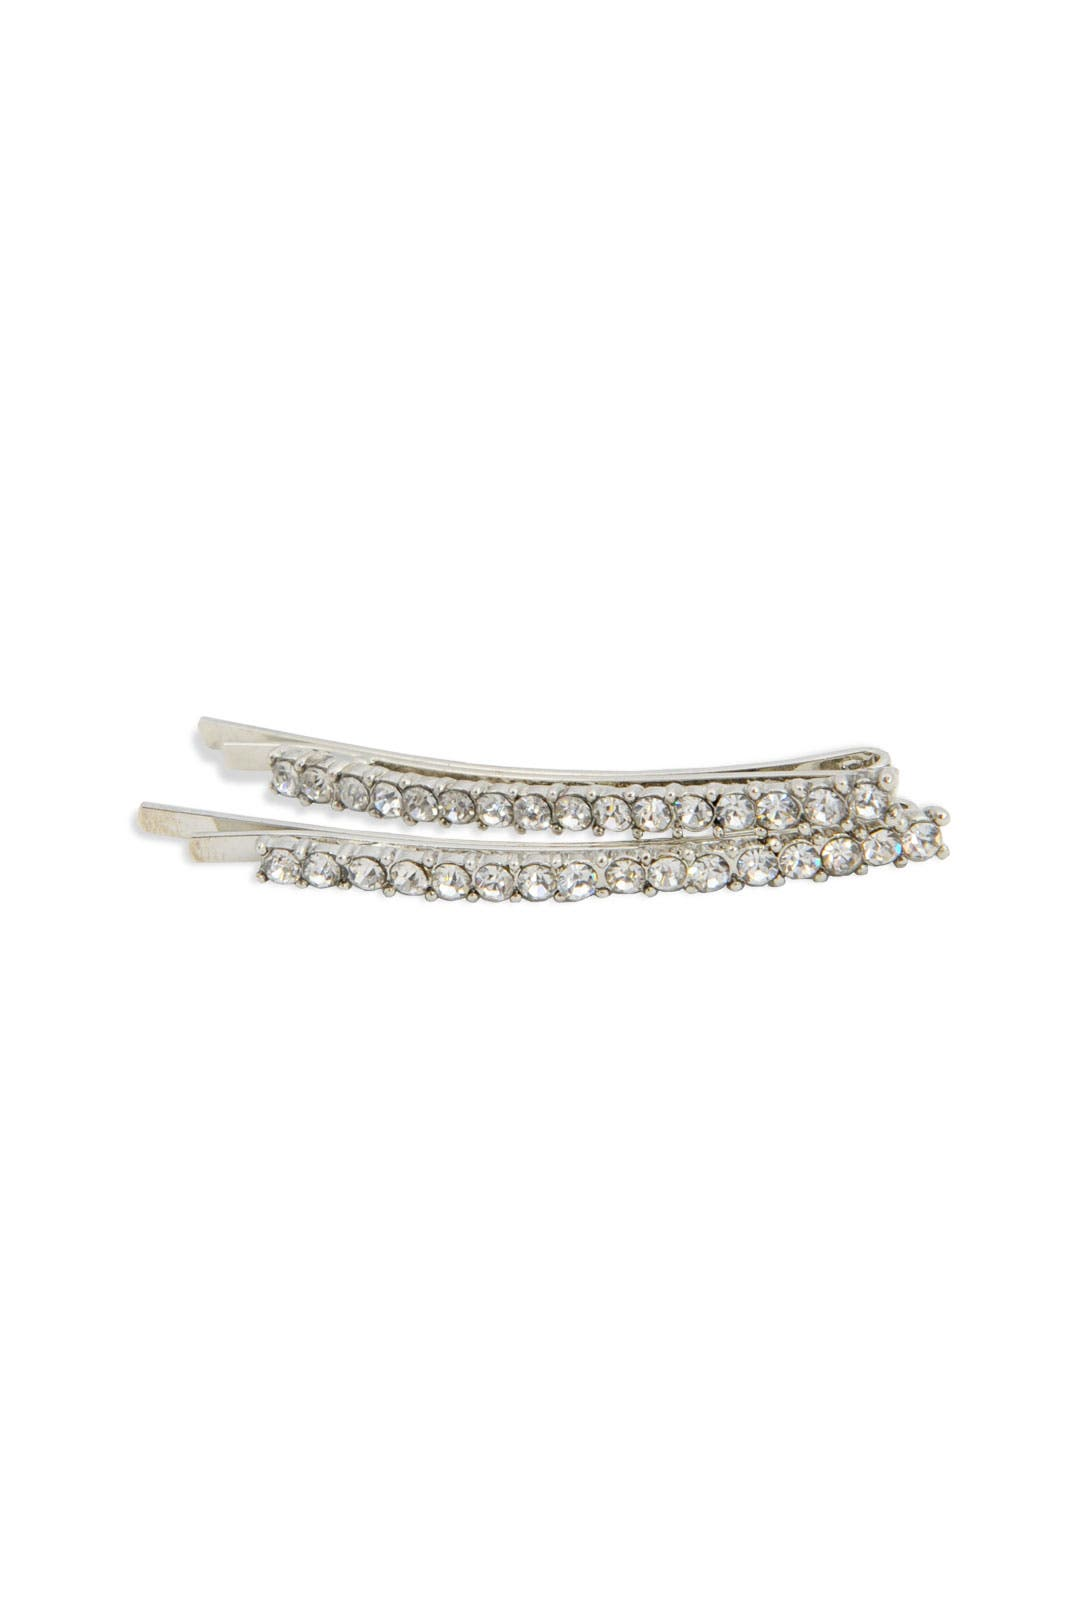 Clear Proper Bobby Pin by Juliet & Company